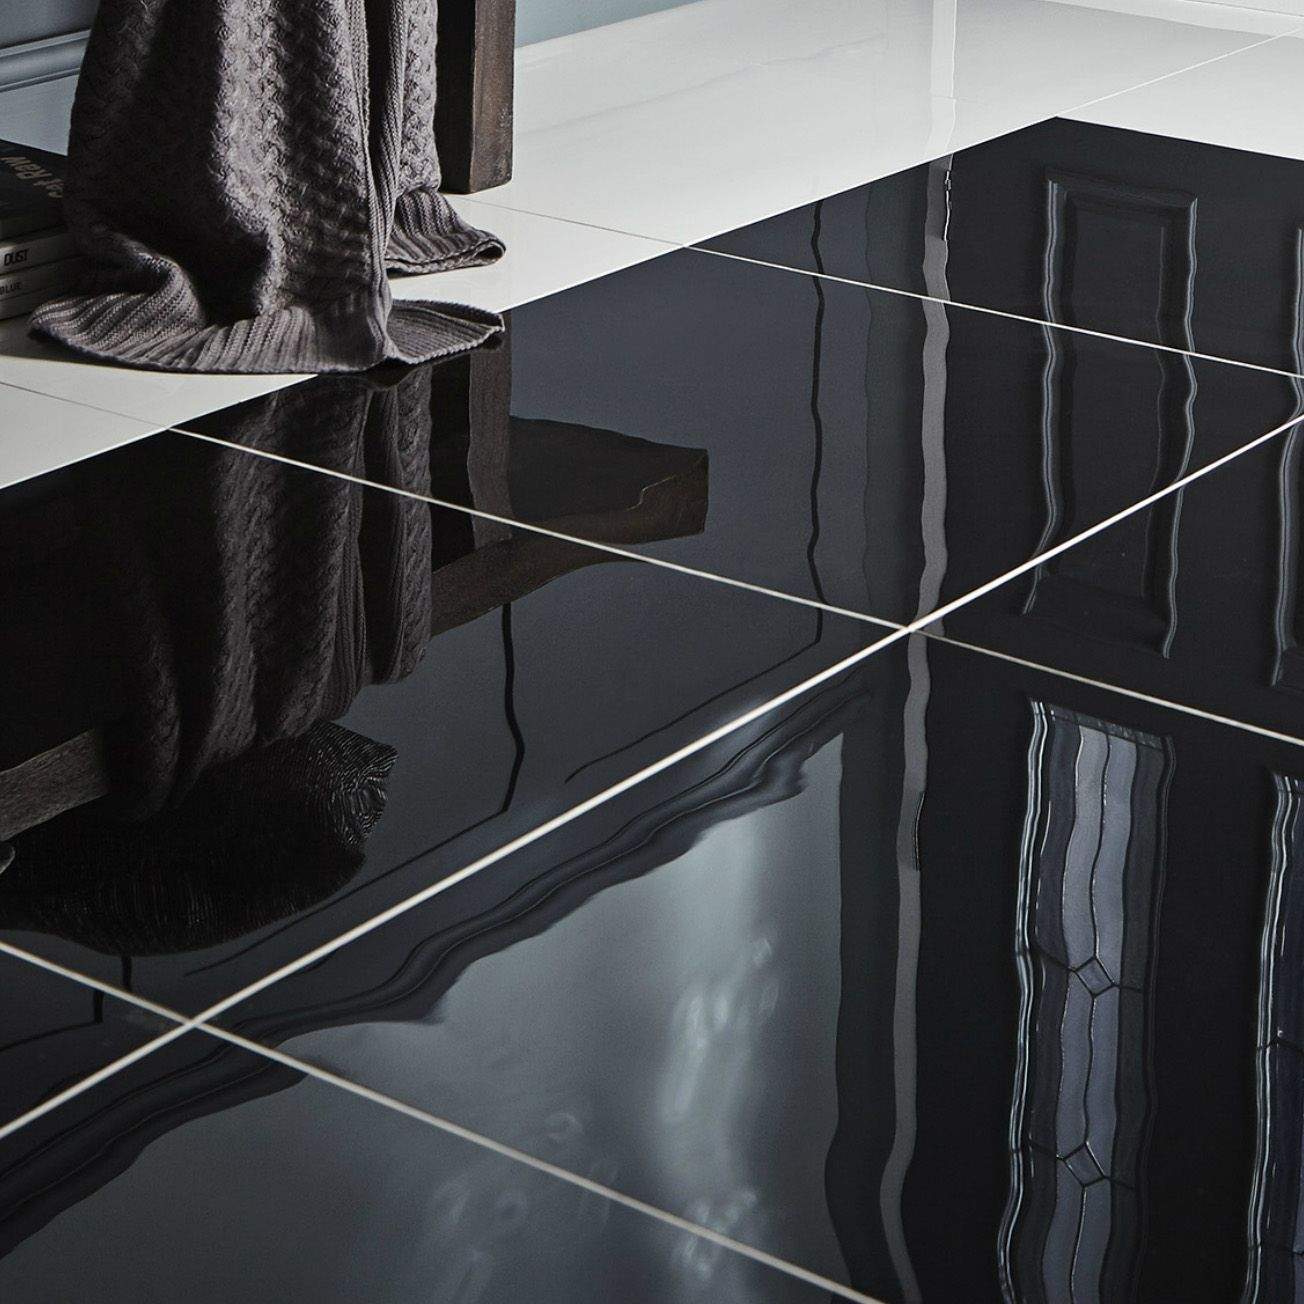 Livourne Black Polished Porcelain Floor Tile Pack Of 3